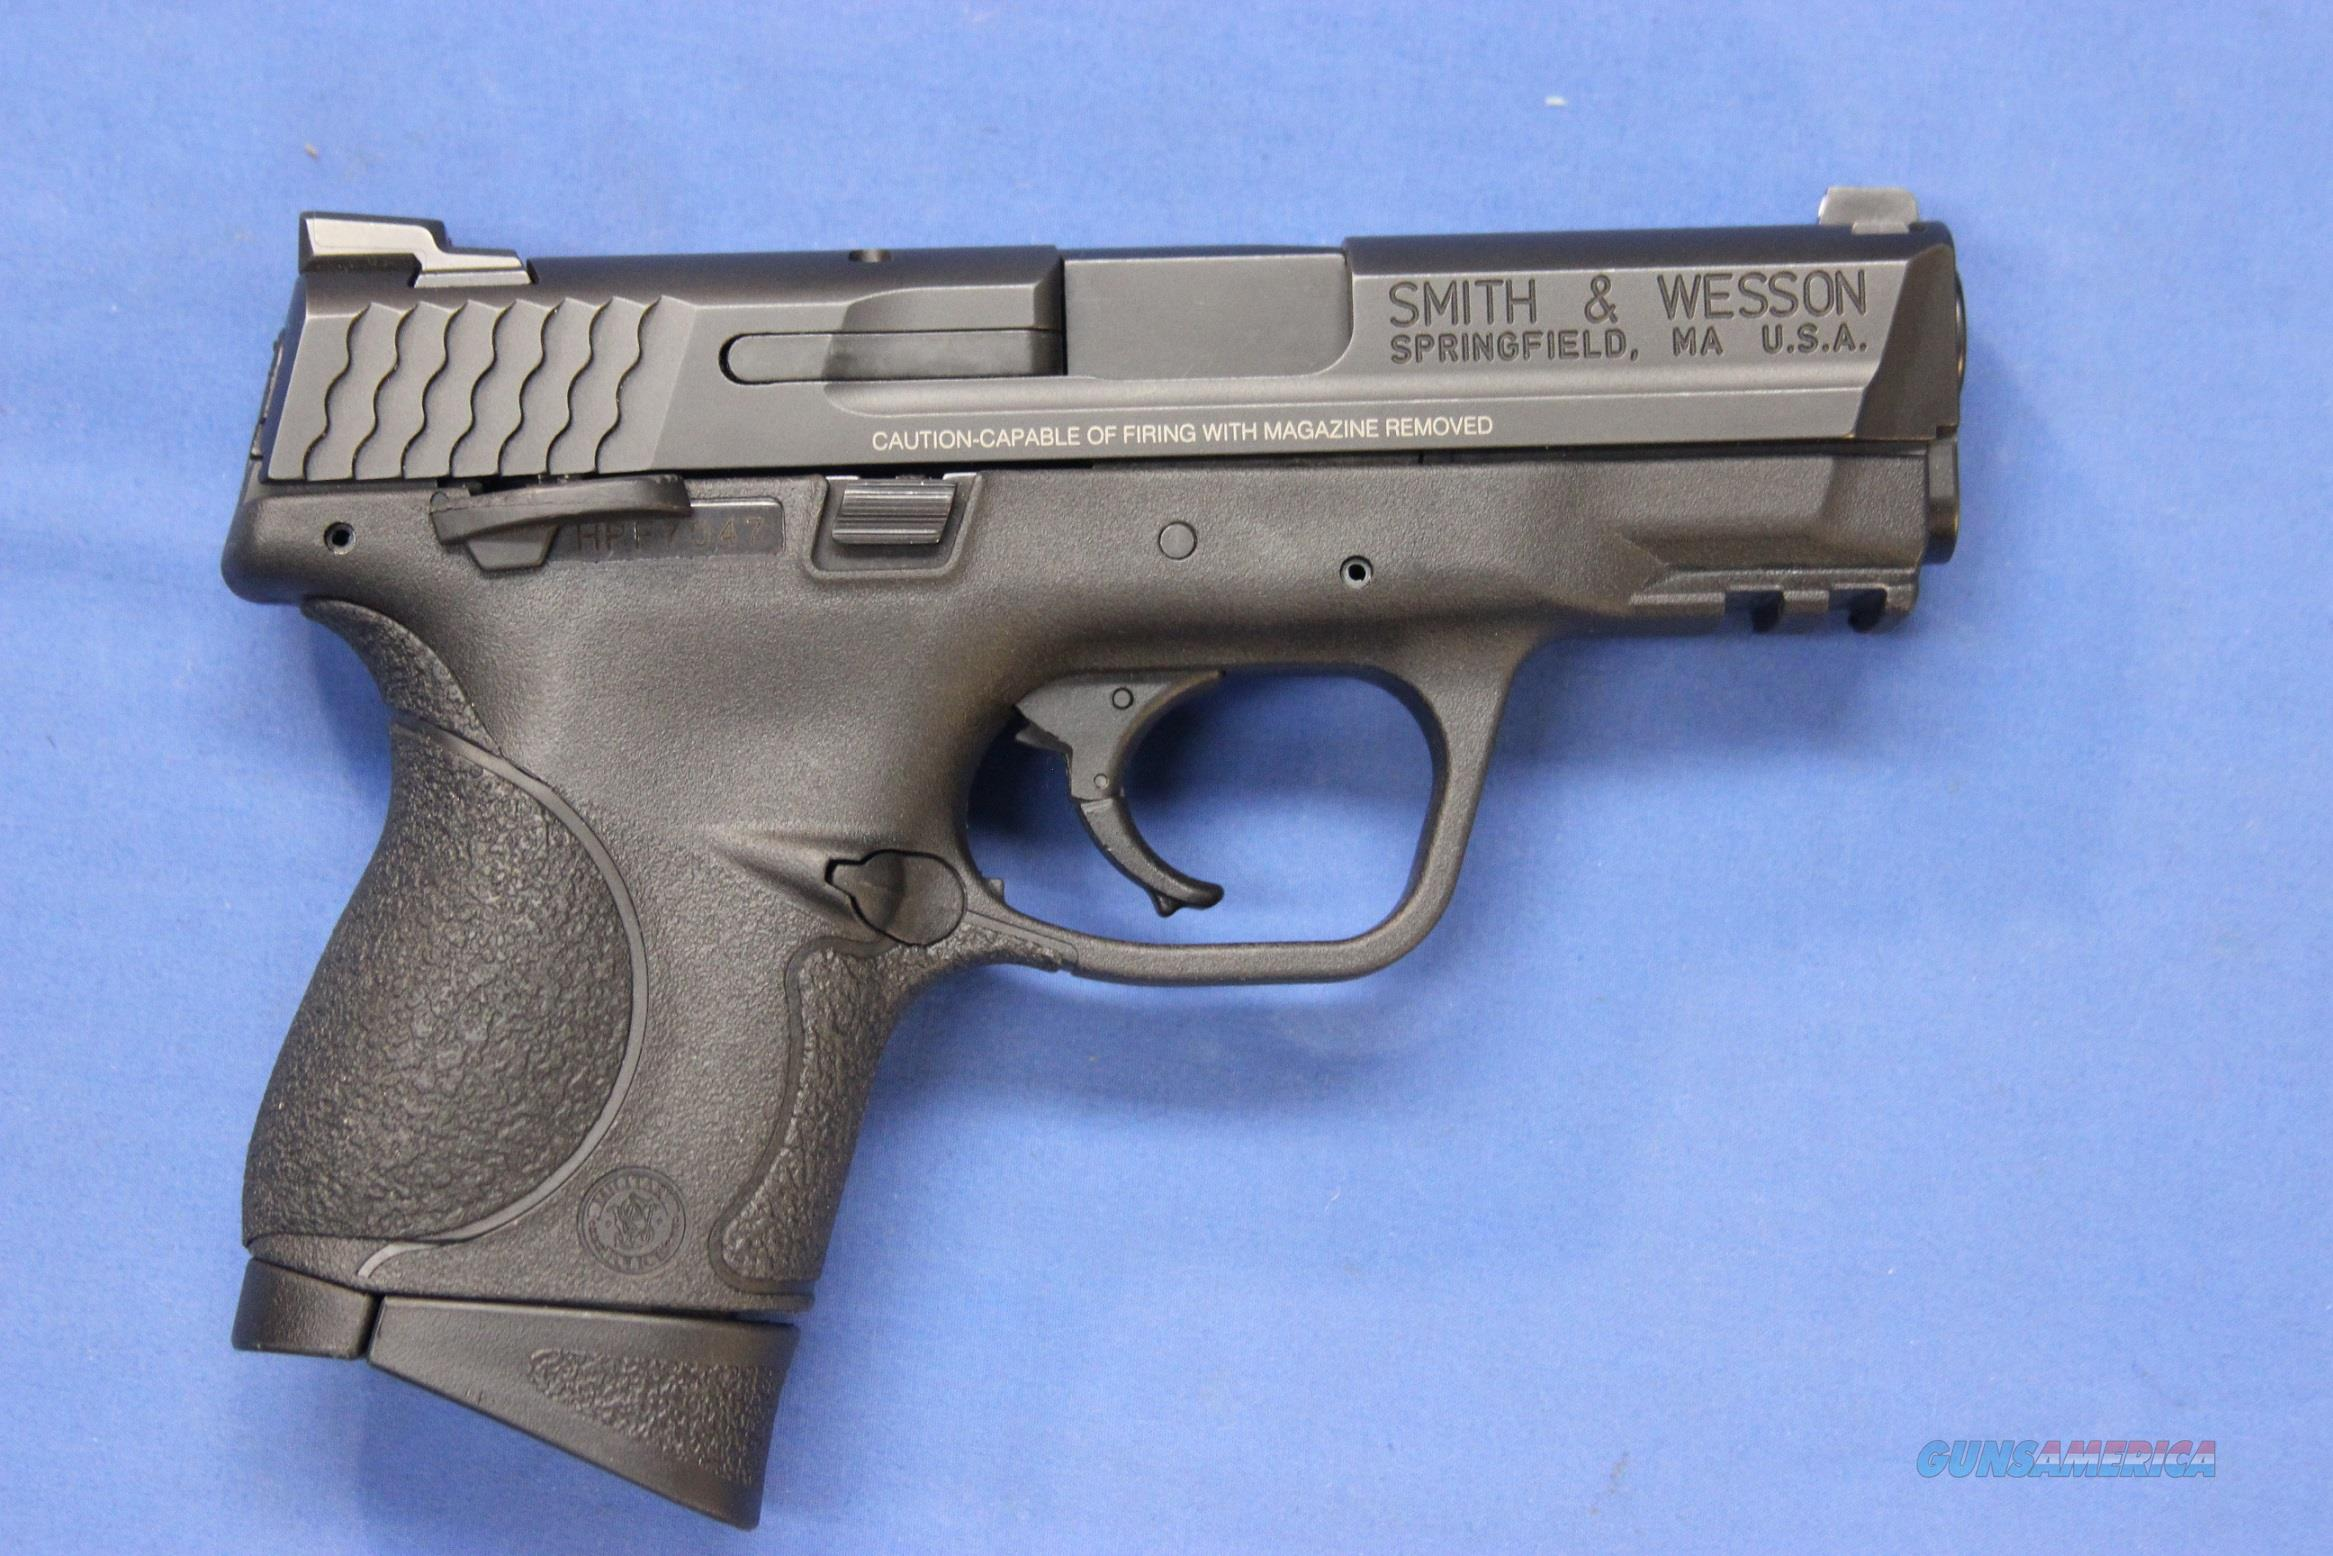 SMITH & WESSON M&P9C COMPACT 9mm w/BOX & 2 MAGS  Guns > Pistols > Smith & Wesson Pistols - Autos > Polymer Frame